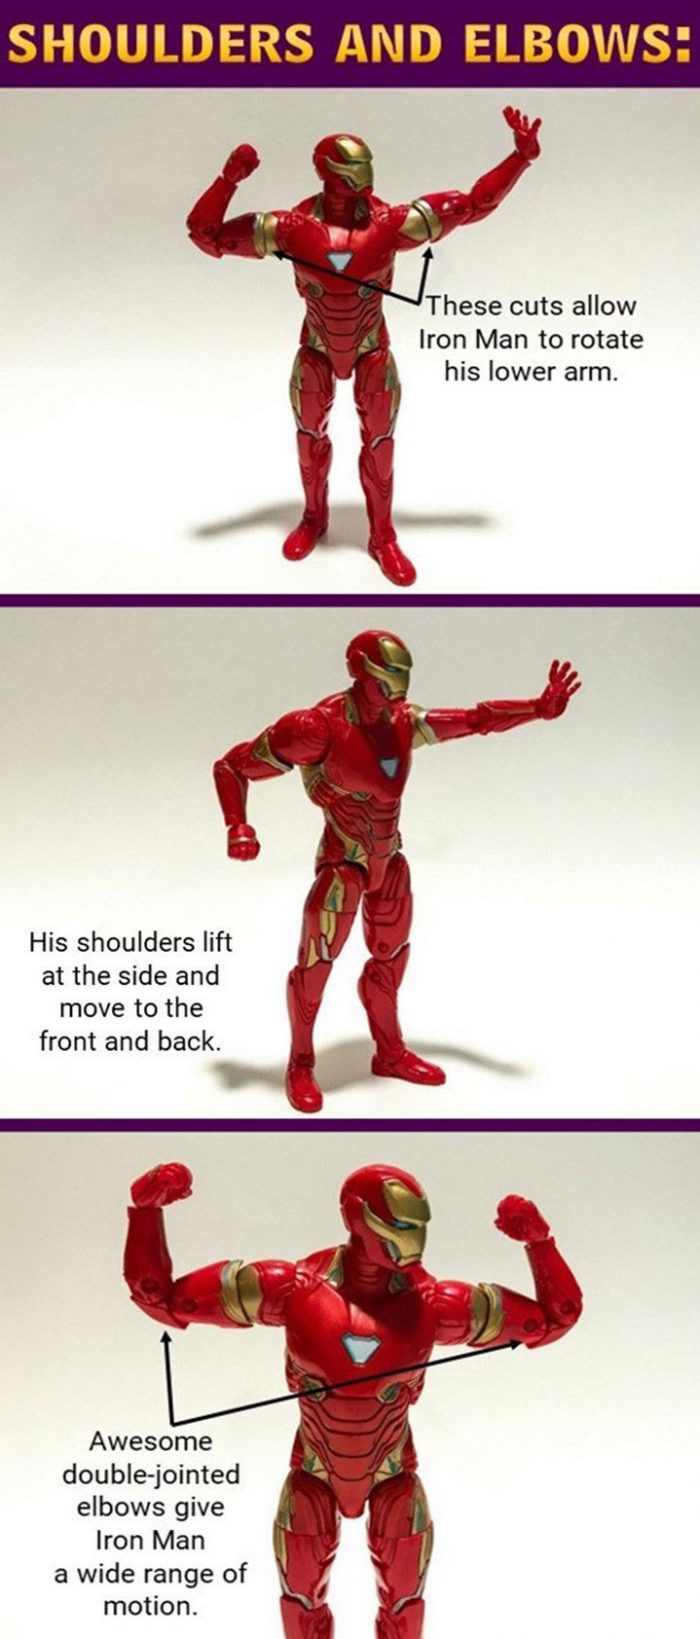 Iron Man can lift and rotate his shoulders and bend his elbows.